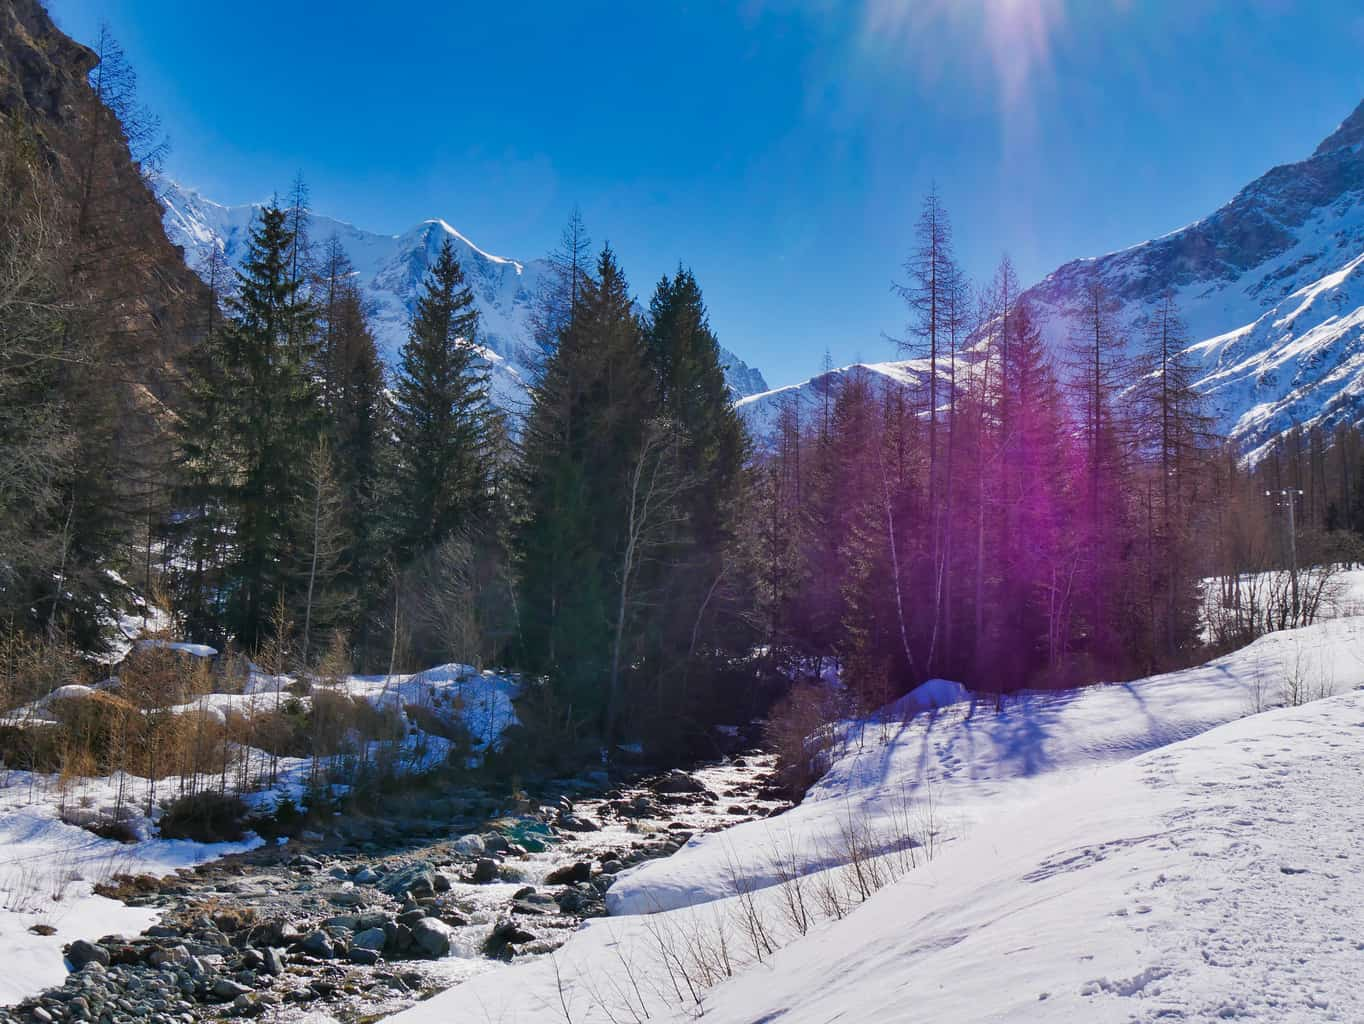 Stream in Nordic Ski Area in French Alps with snow to the side green trees in the background blue sky and snowy mountains